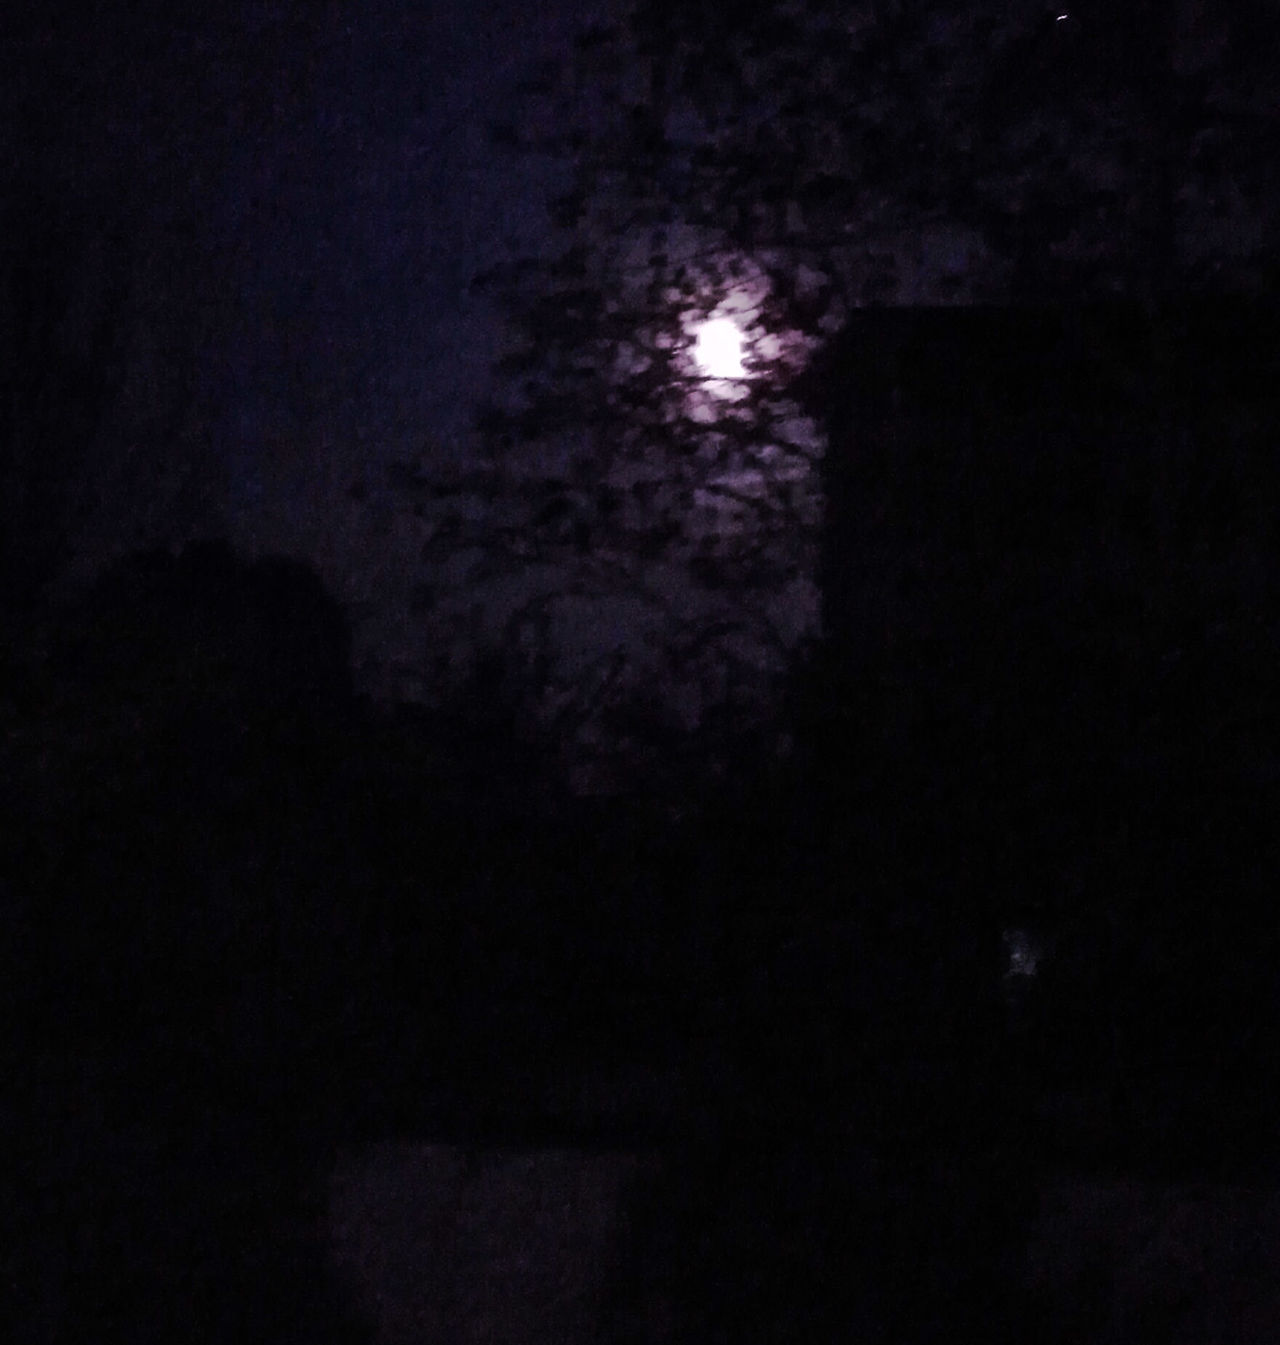 Purple moon Dark Night Nature Star - Space Scenics Astronomy Beauty In Nature Sky Space No People Star Field Outdoors Galaxy Moon Purple Violet Darkness Dark Mystery Dream Tree Shadow